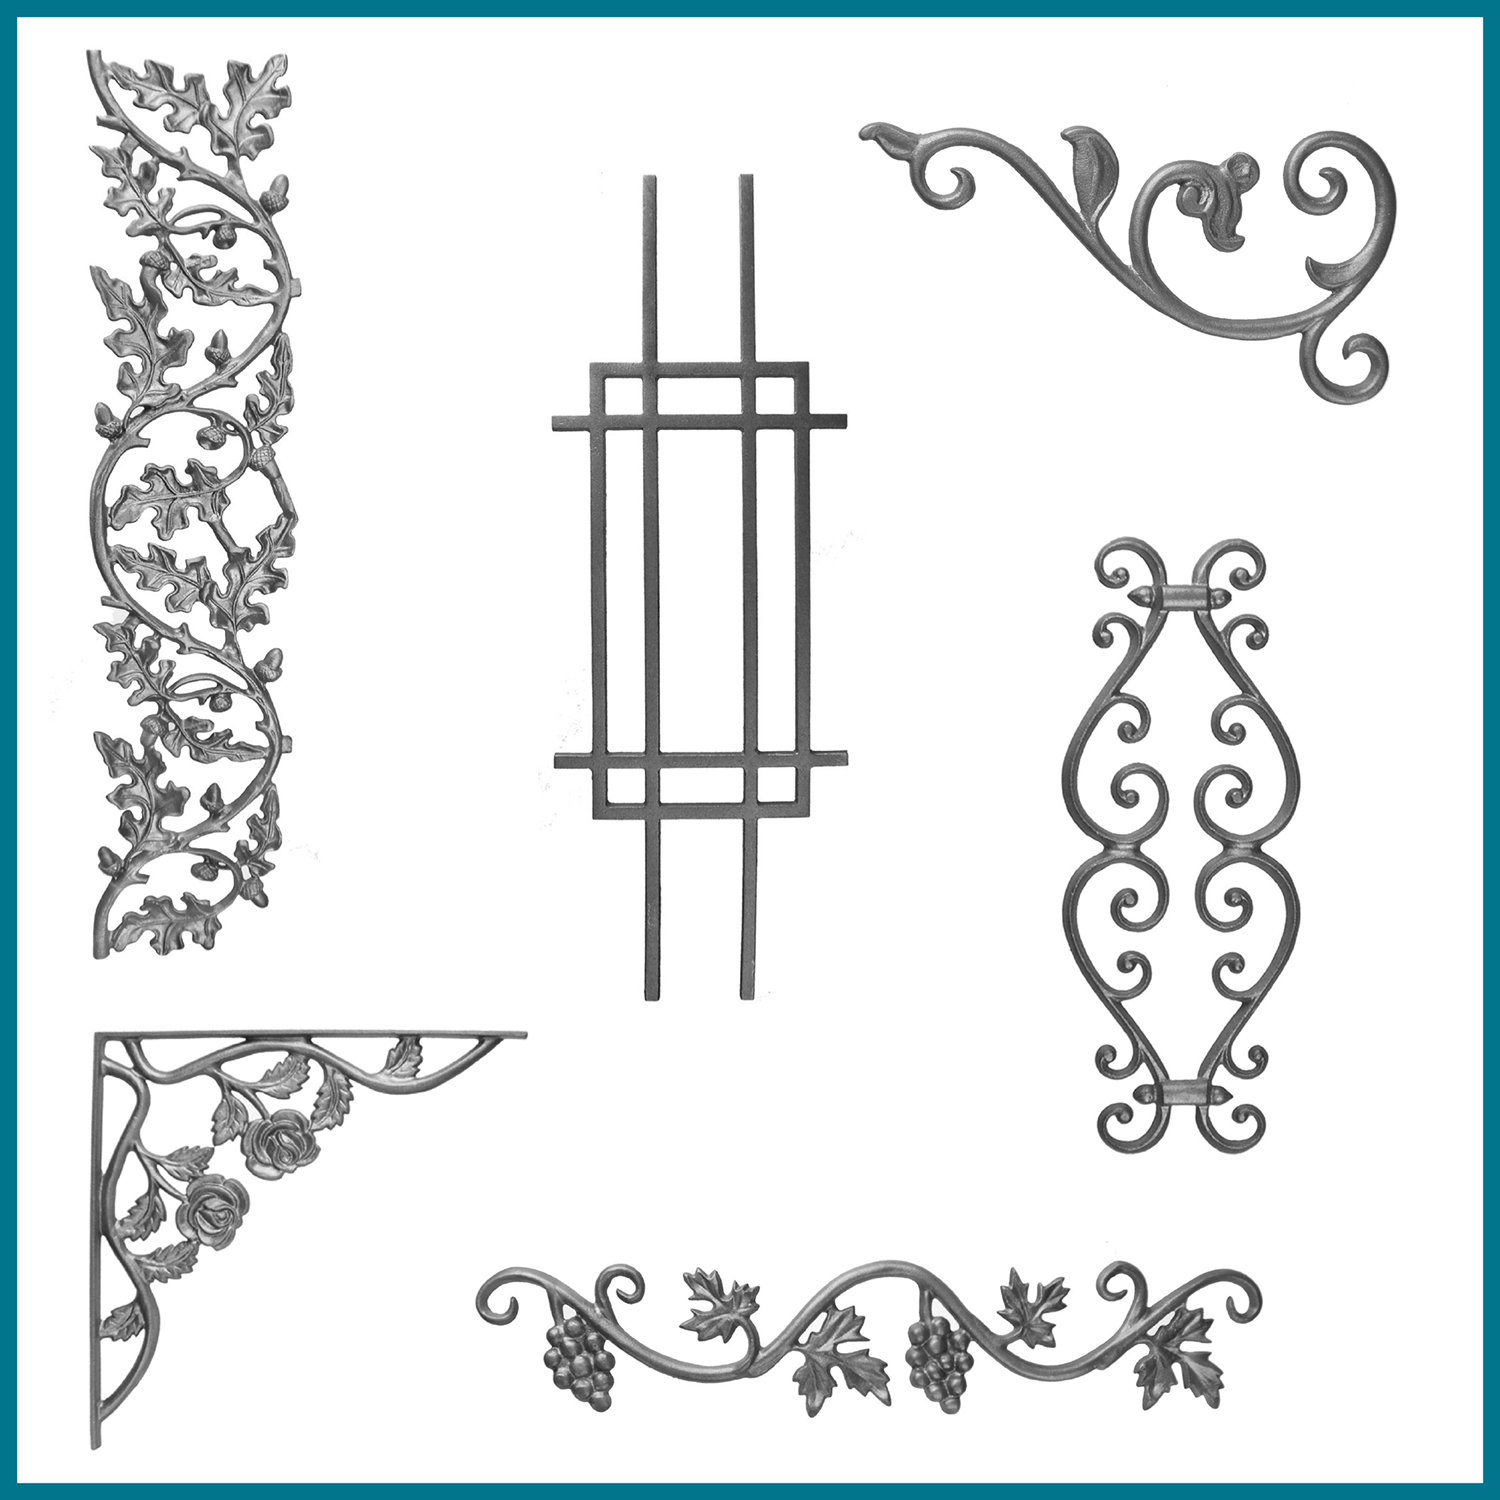 Ornamental Iron Castings